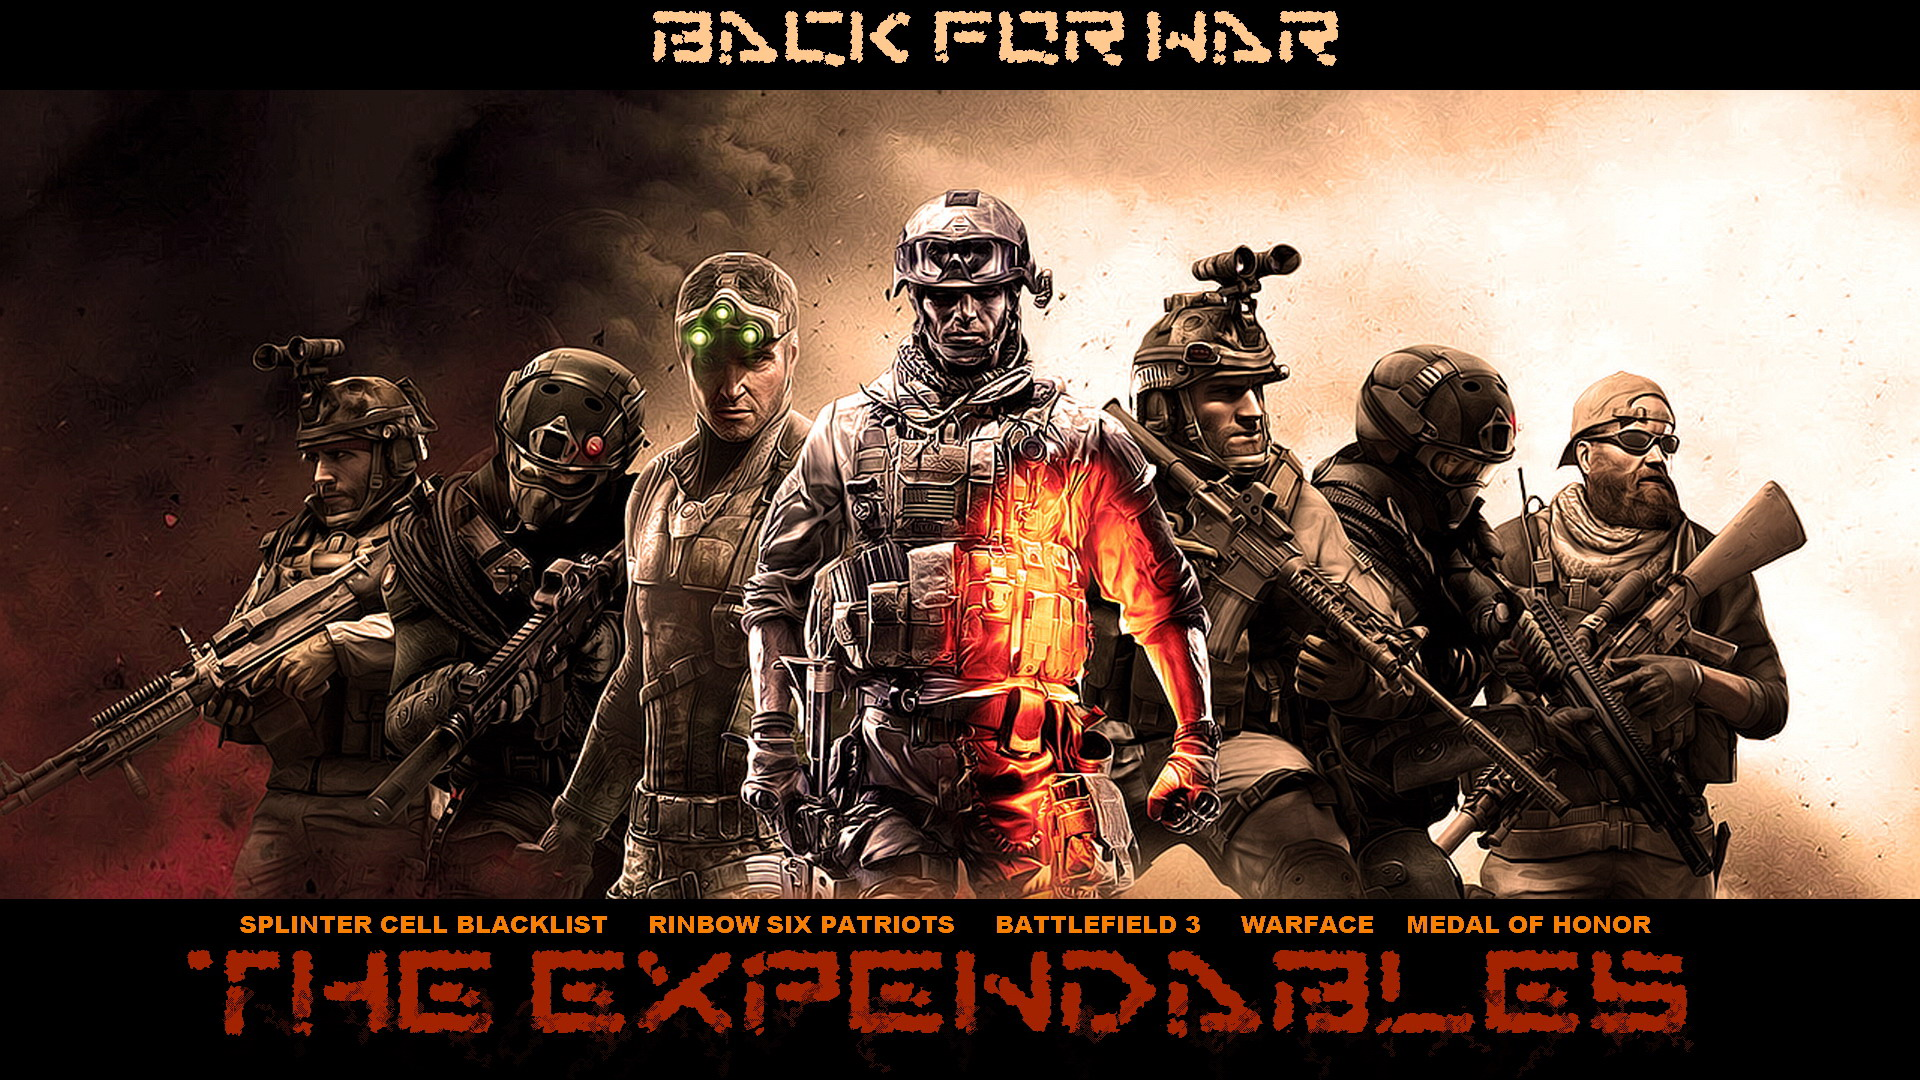 The Expendables Game Heroes Wallpapers HD Wallpapers 1920x1080